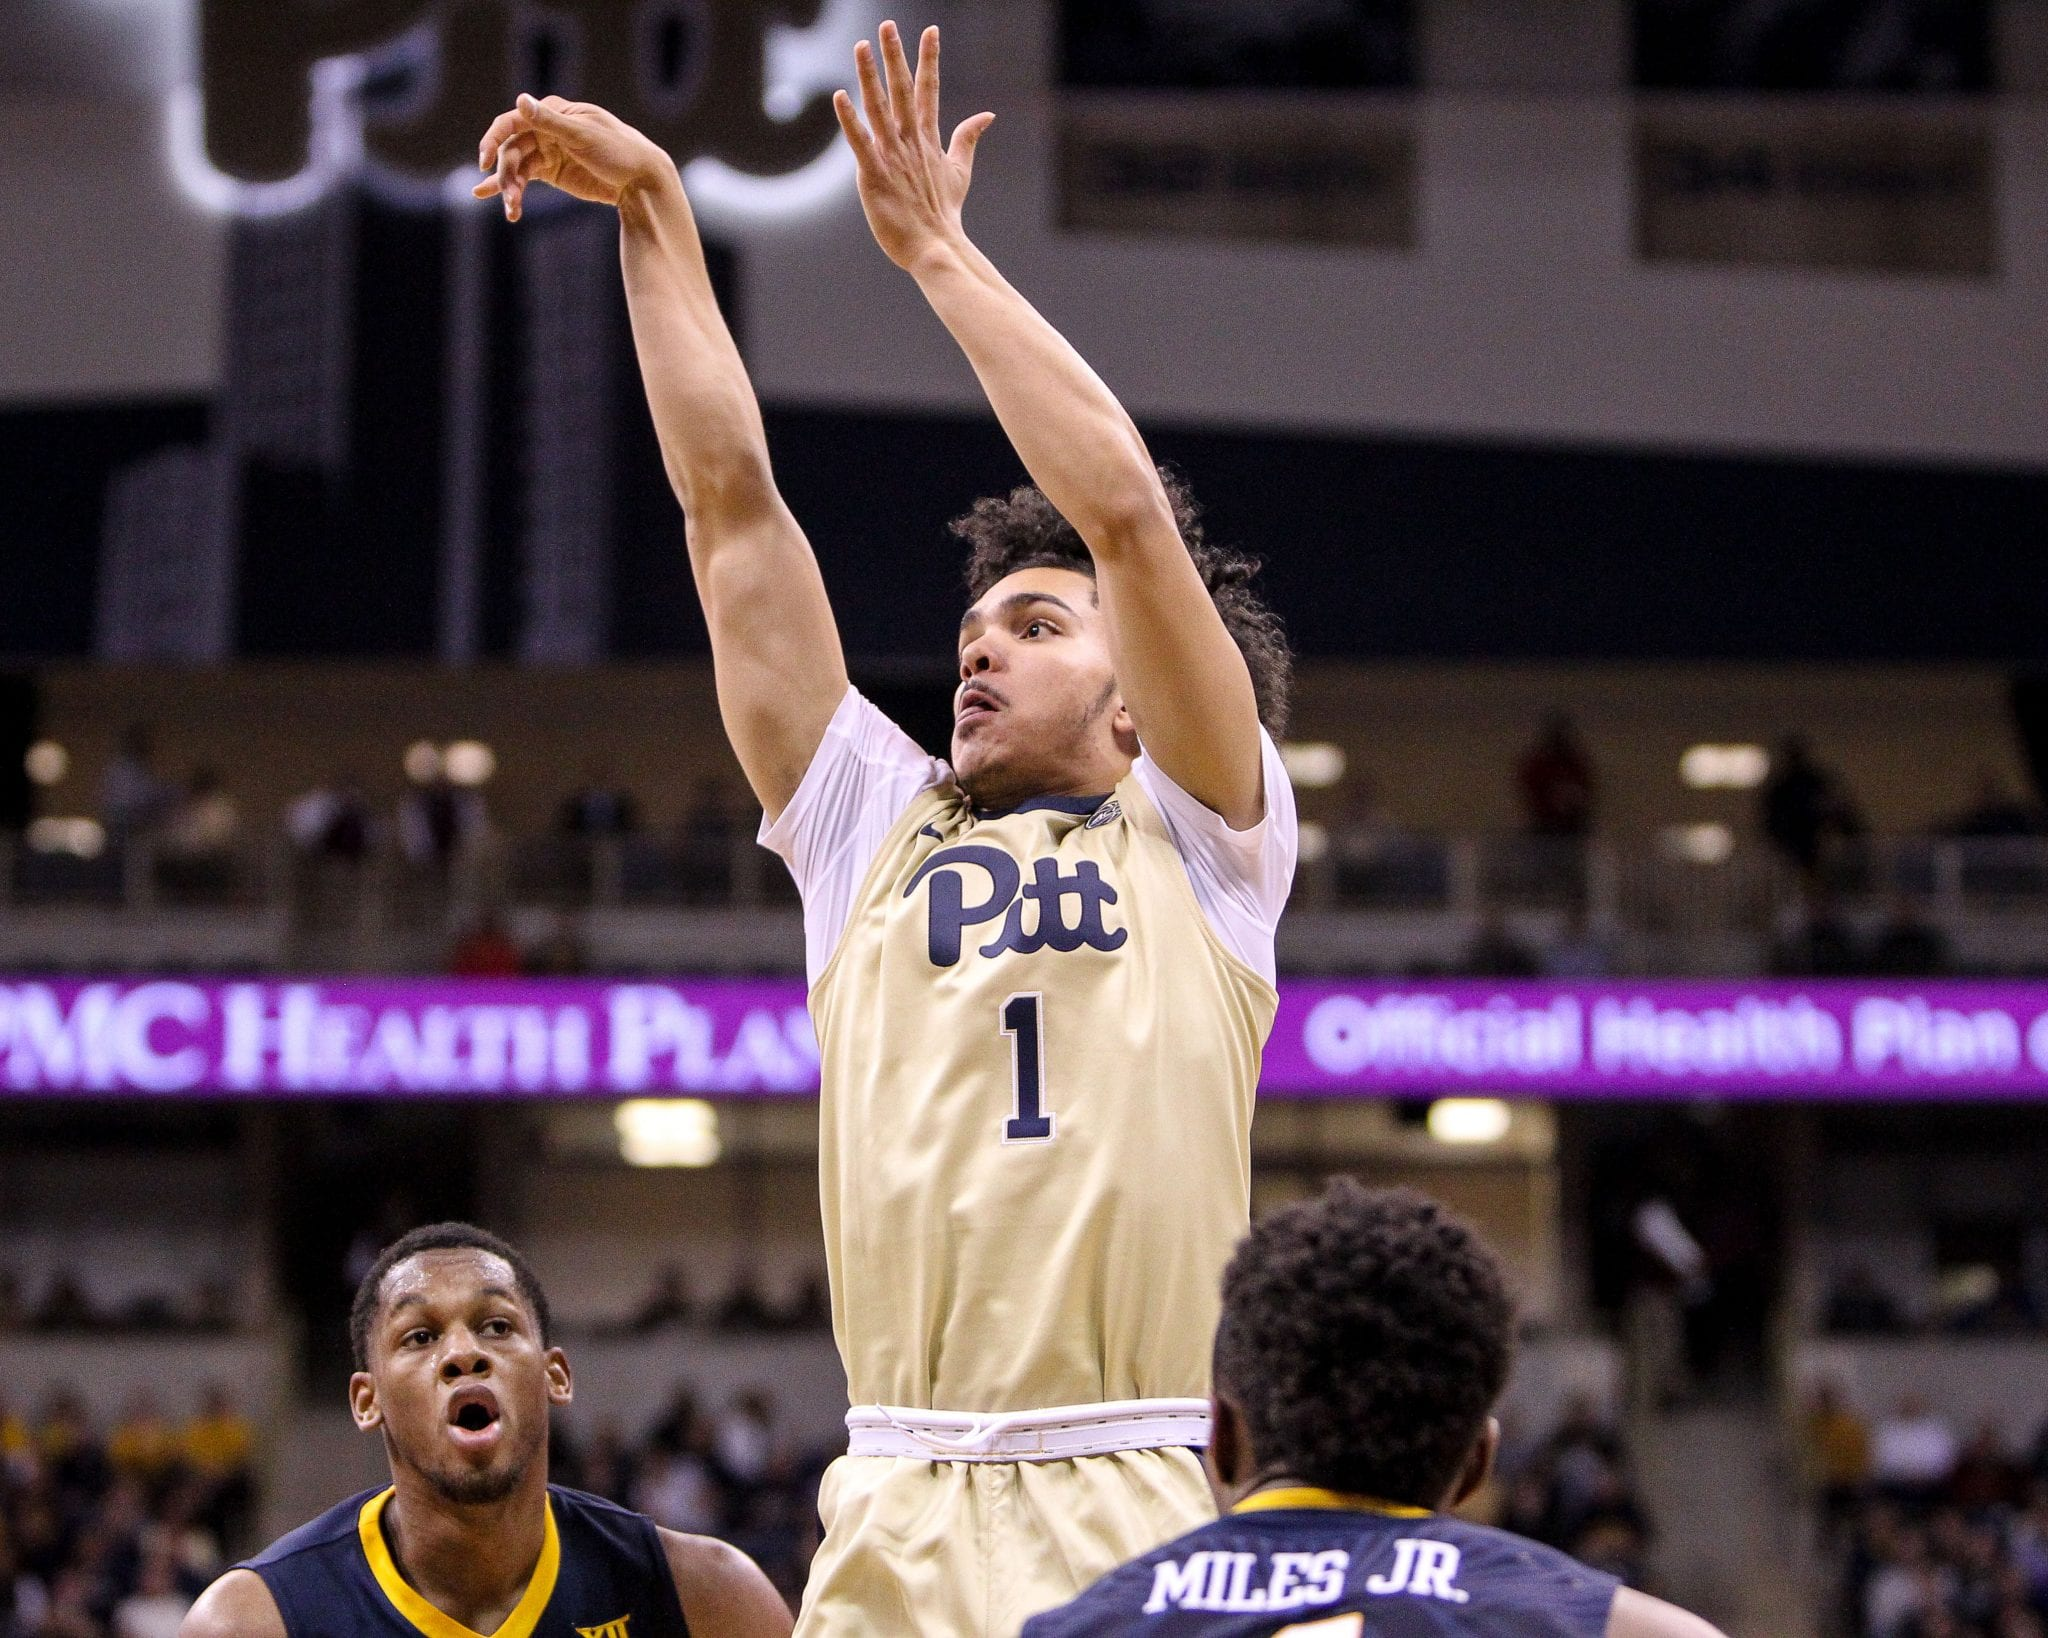 Parker Stewart (1) shots a 3 pointer as the Pitt Panthers take on West Virginia on December 9, 2017 -- DAVID HAGUE